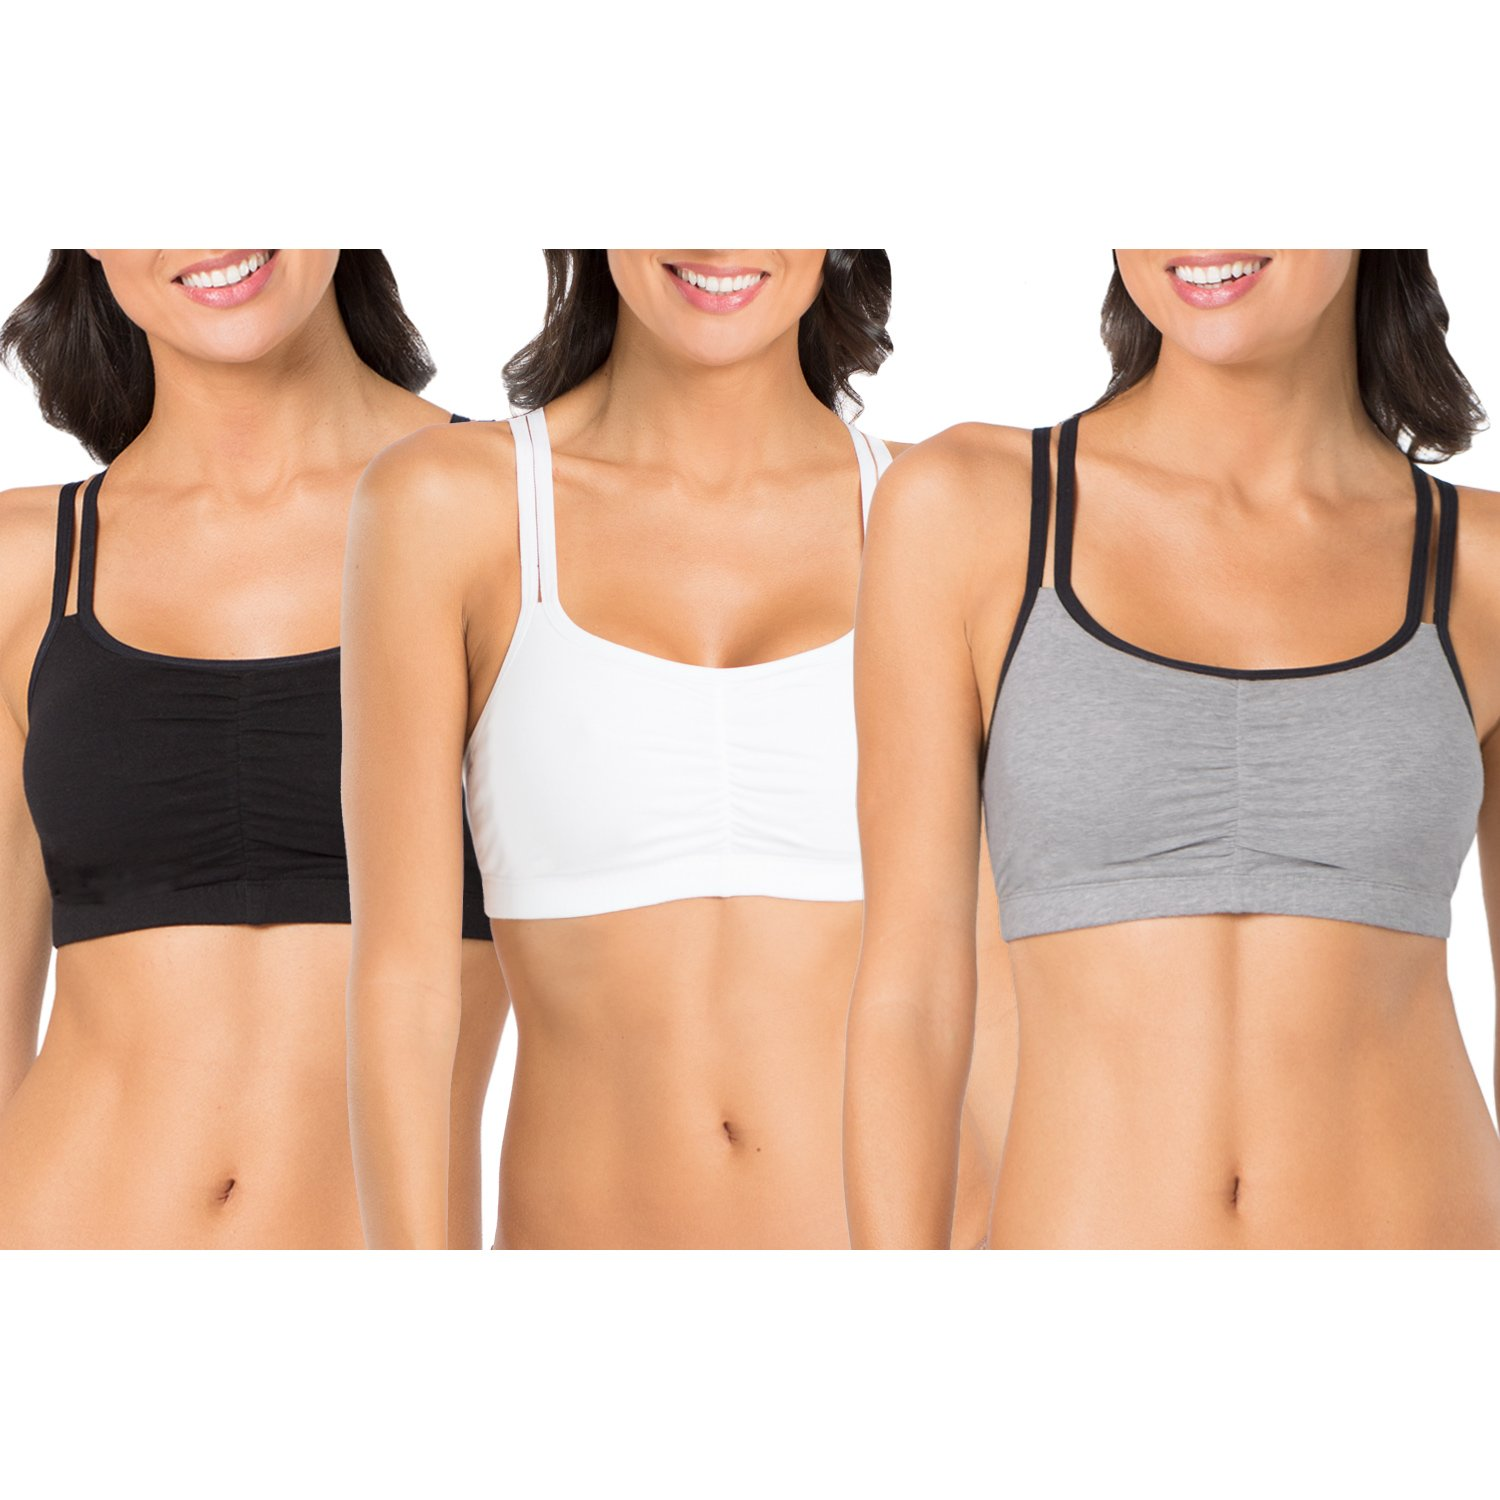 Fruit of the Loom Women's 3 Pack Spaghetti Sports Bra, Grey Black/White/Black, 32